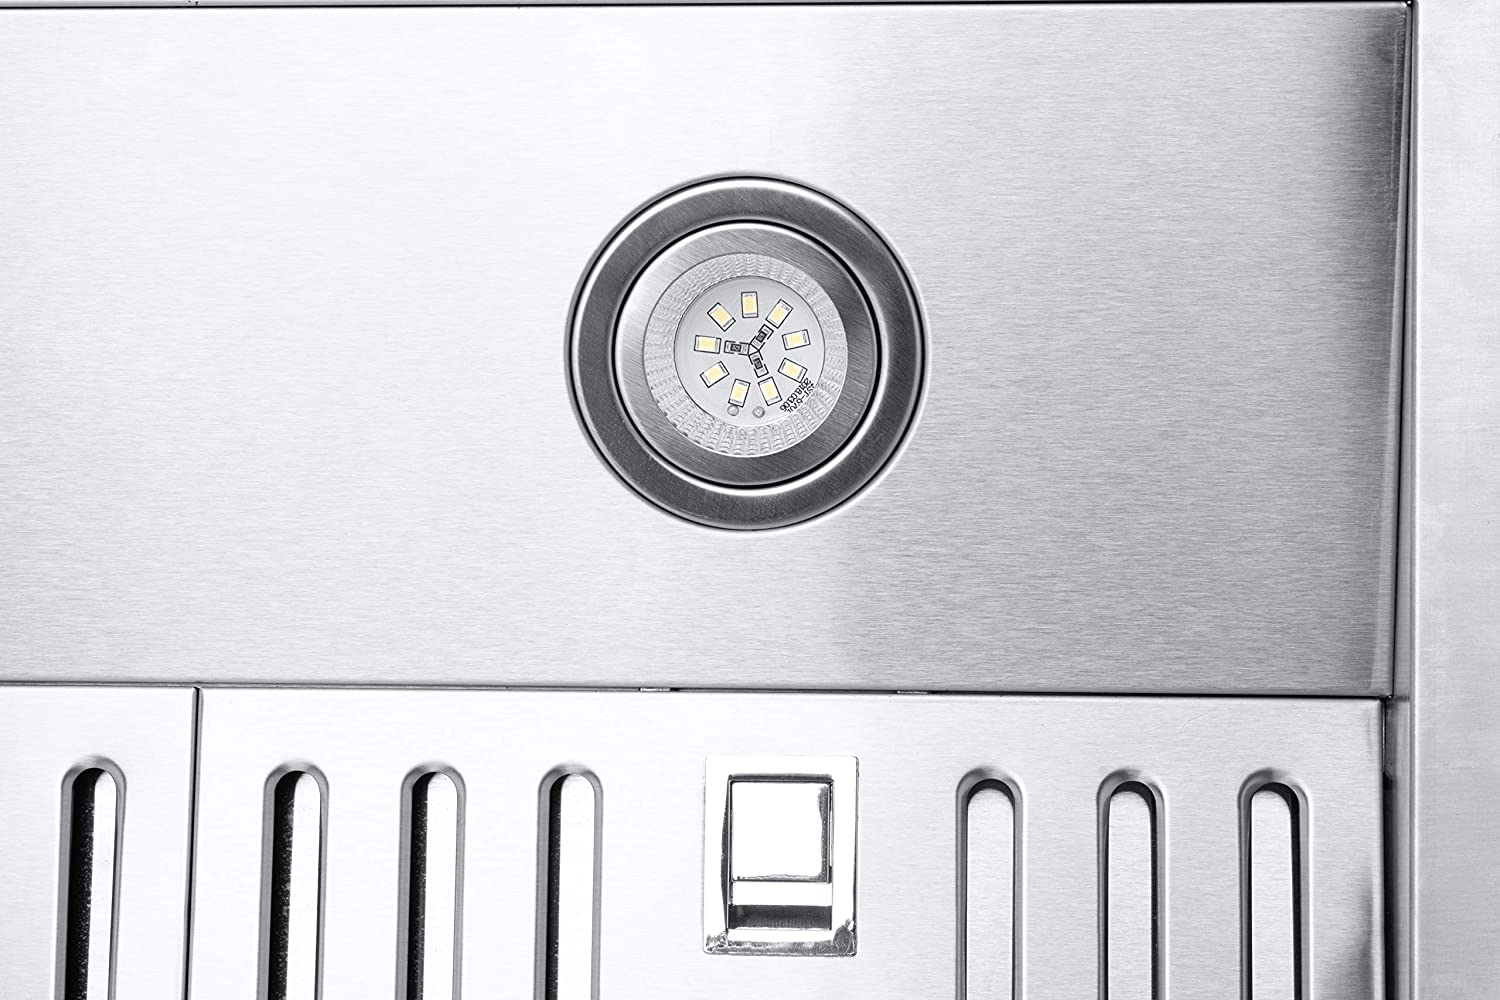 """Chef Range Hood PS10 30/"""" Pro Performance Under Cabinet Kitchen Extractor Stainless Steel Electric Stove Ventilator 3 Speed 900 CFM Exhaust Fan with Bright LED Lights /& Delay Auto Shut-Off"""